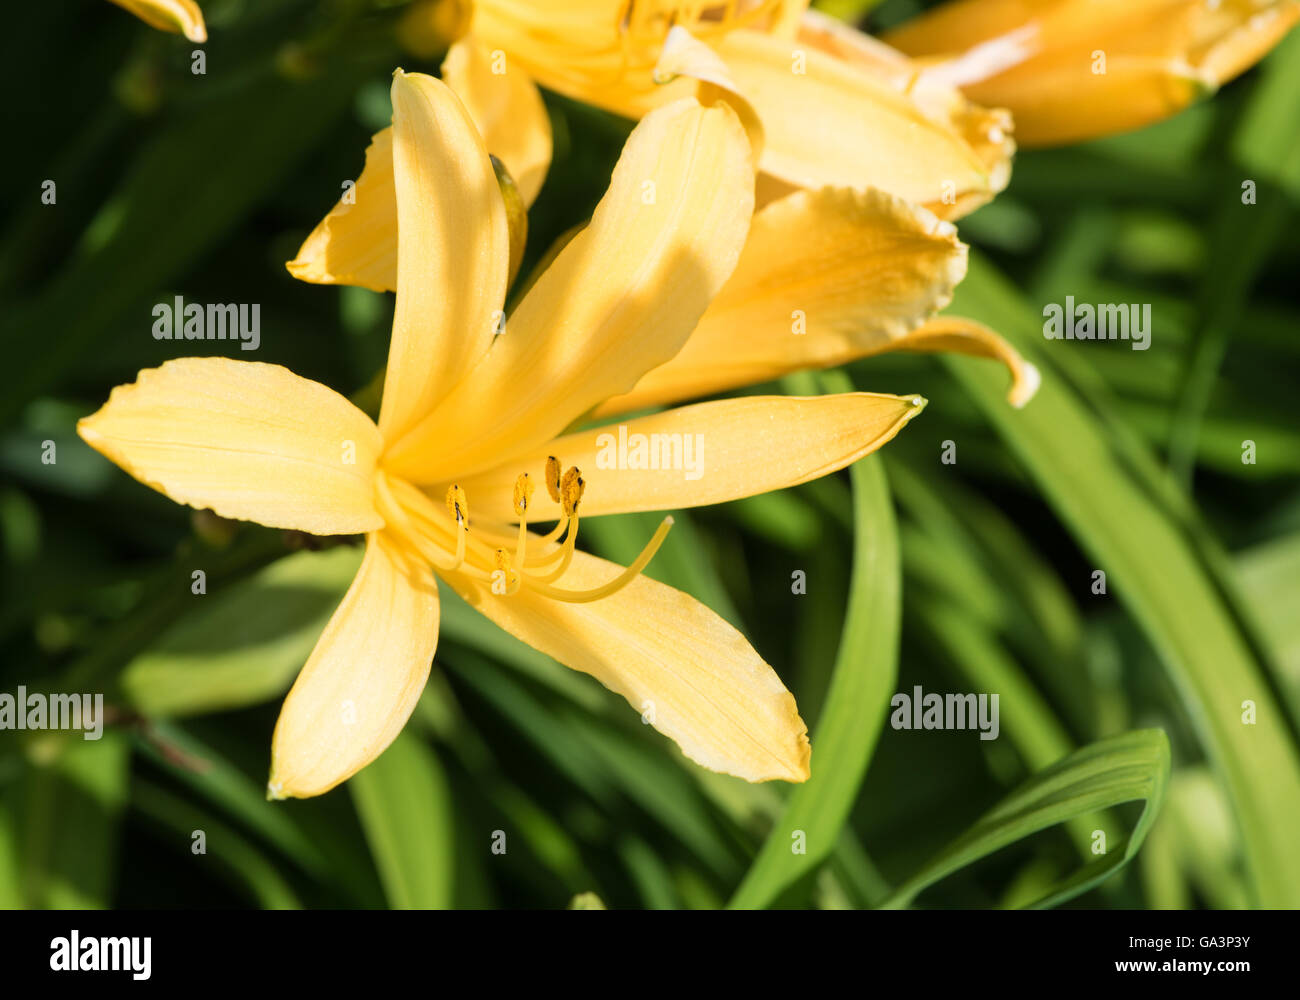 Lily like flower stock photos lily like flower stock images alamy yellow lily like flower stock image izmirmasajfo Image collections